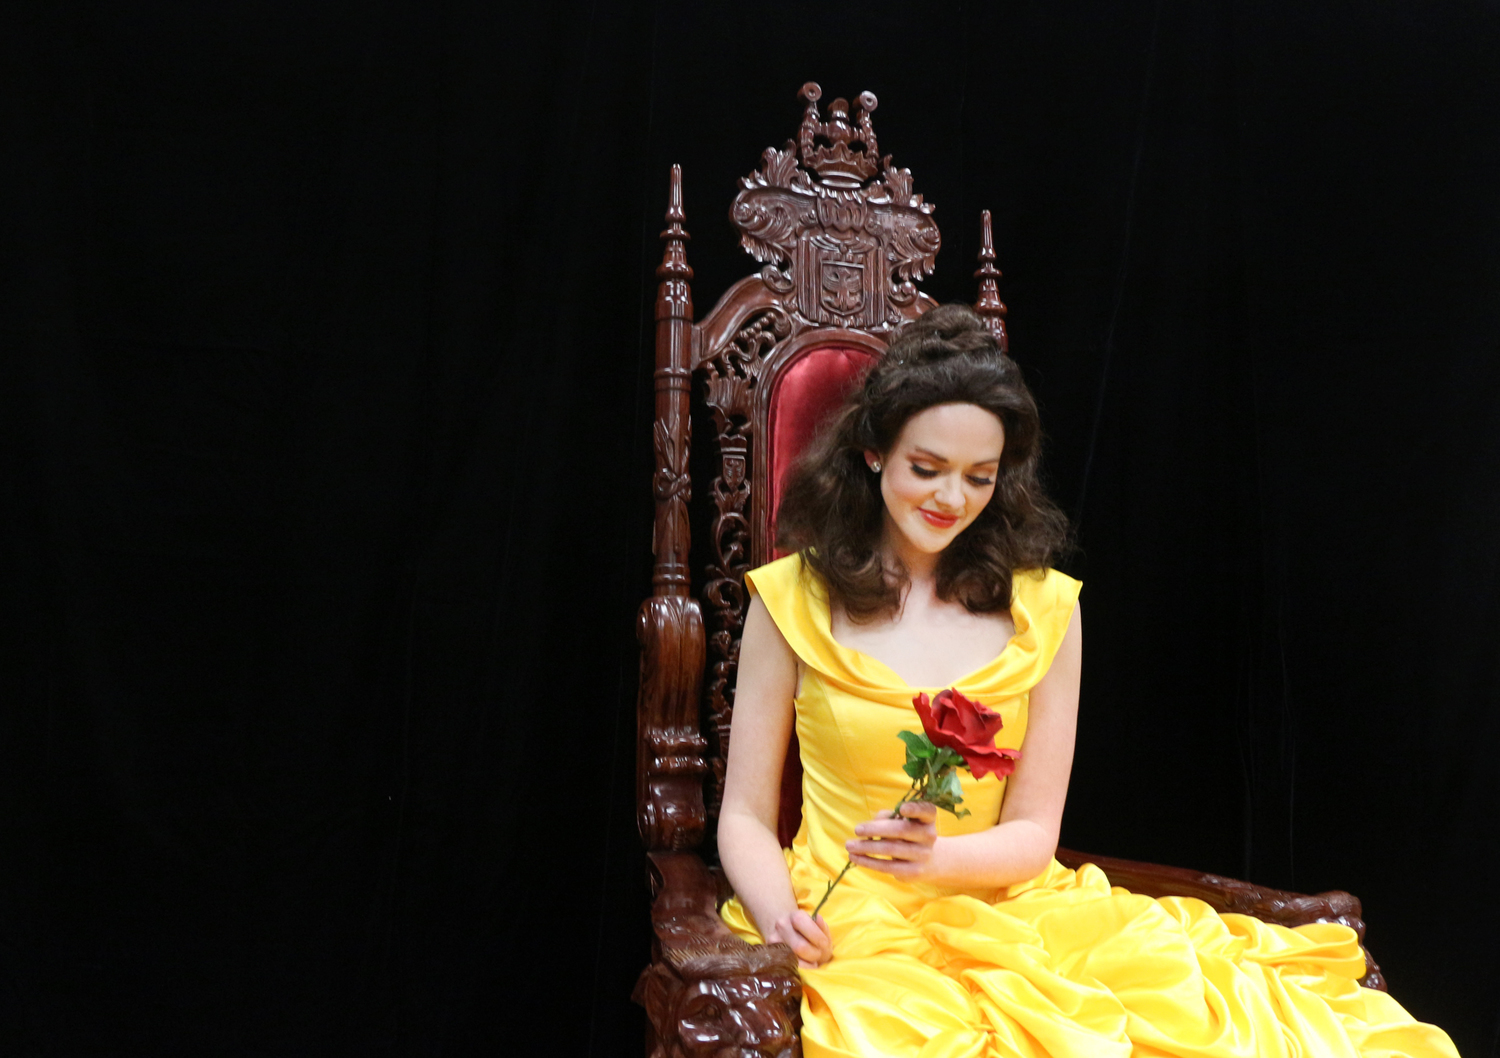 BWW Review: BEAUTY AND THE BEAST at Woodlawn Theatre